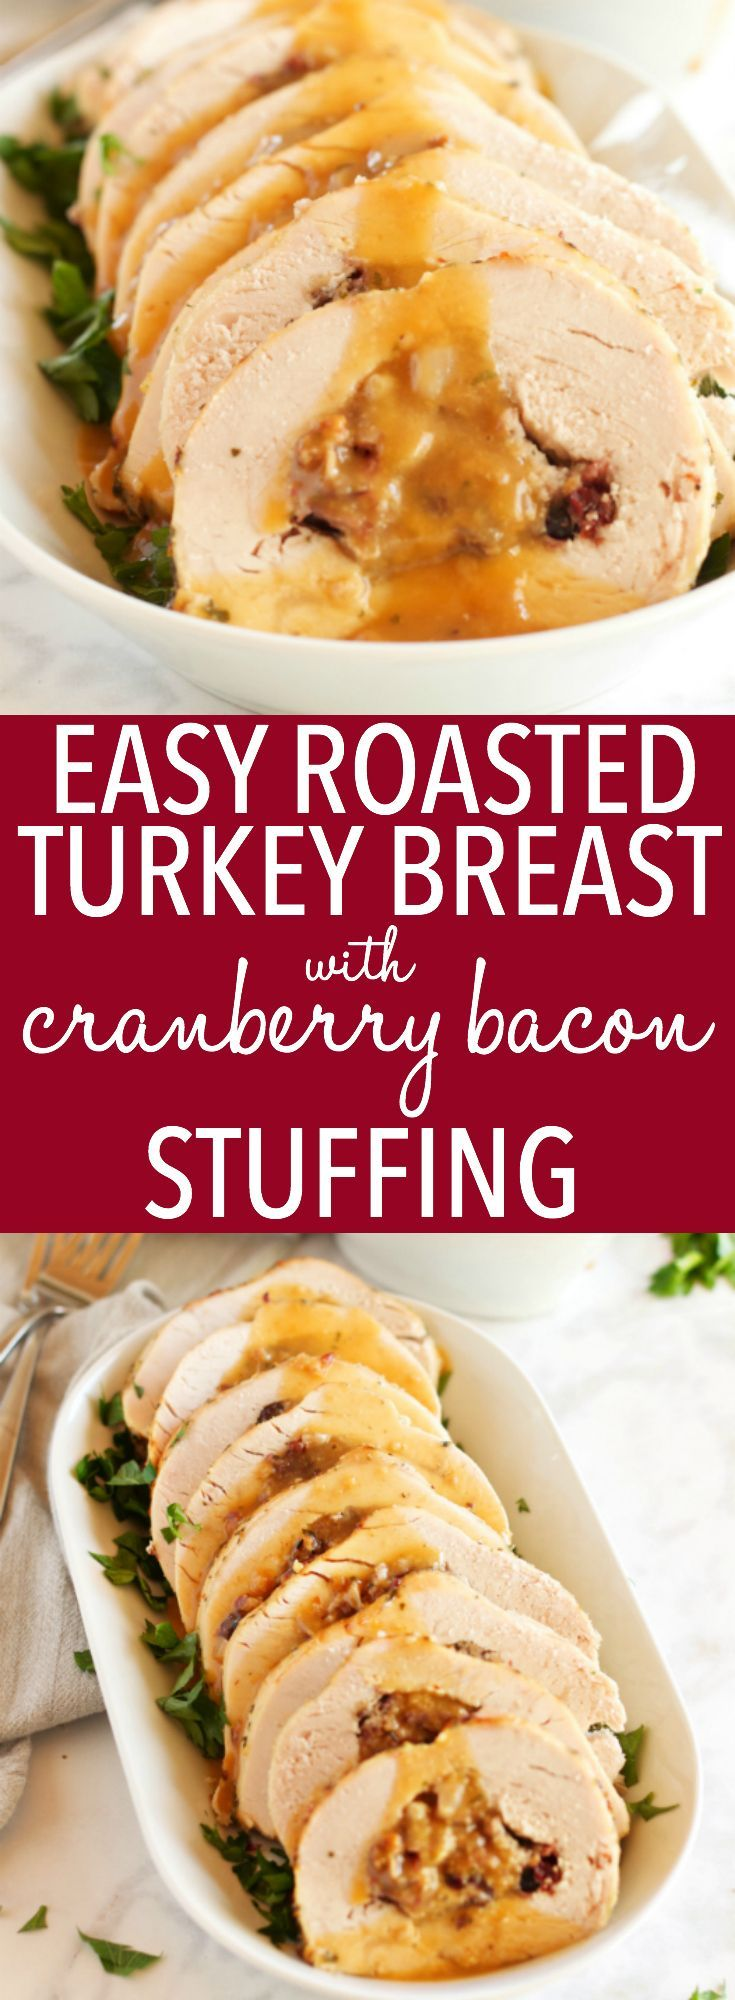 This Roasted Turkey Breast with Cranberry Bacon Stuffing is an easy holiday recipe! Juicy turkey and easy homemade stuffing with cranberries, bacon & herbs! Perfect for Thanksgiving or Christmas for a small holiday dinner crowd! Recipe from thebusybaker.ca! #christmasturkey #thanksgivingturkey #easythanksgivingrecipe #easyturkeyrecipe via @busybakerblog